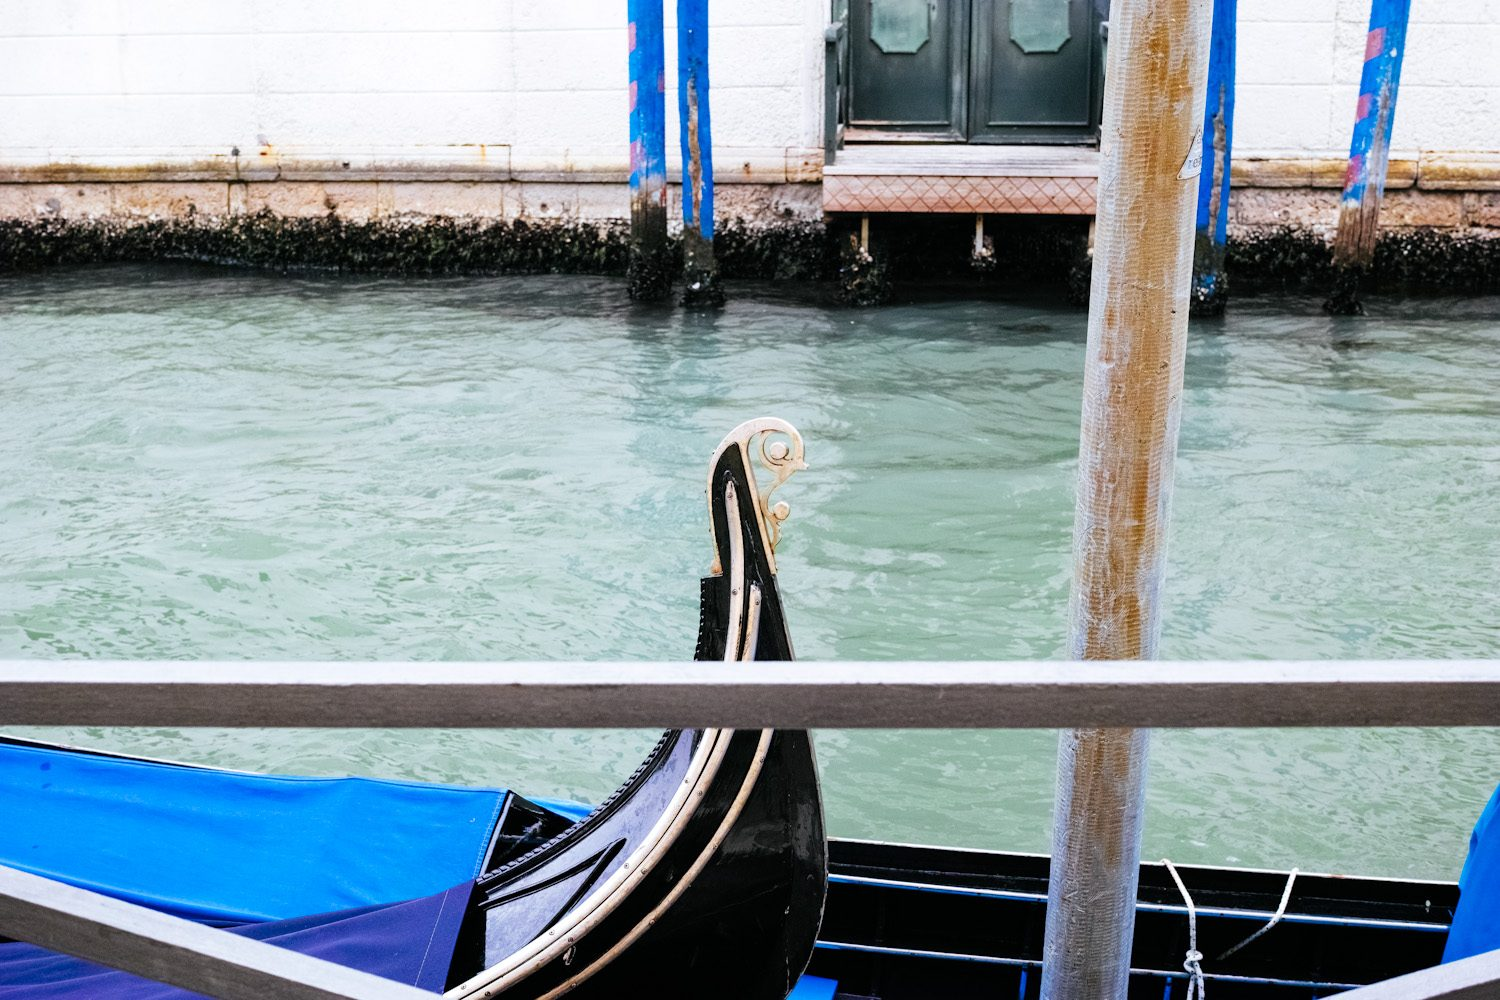 themood_venice_italy_thevoyageur006